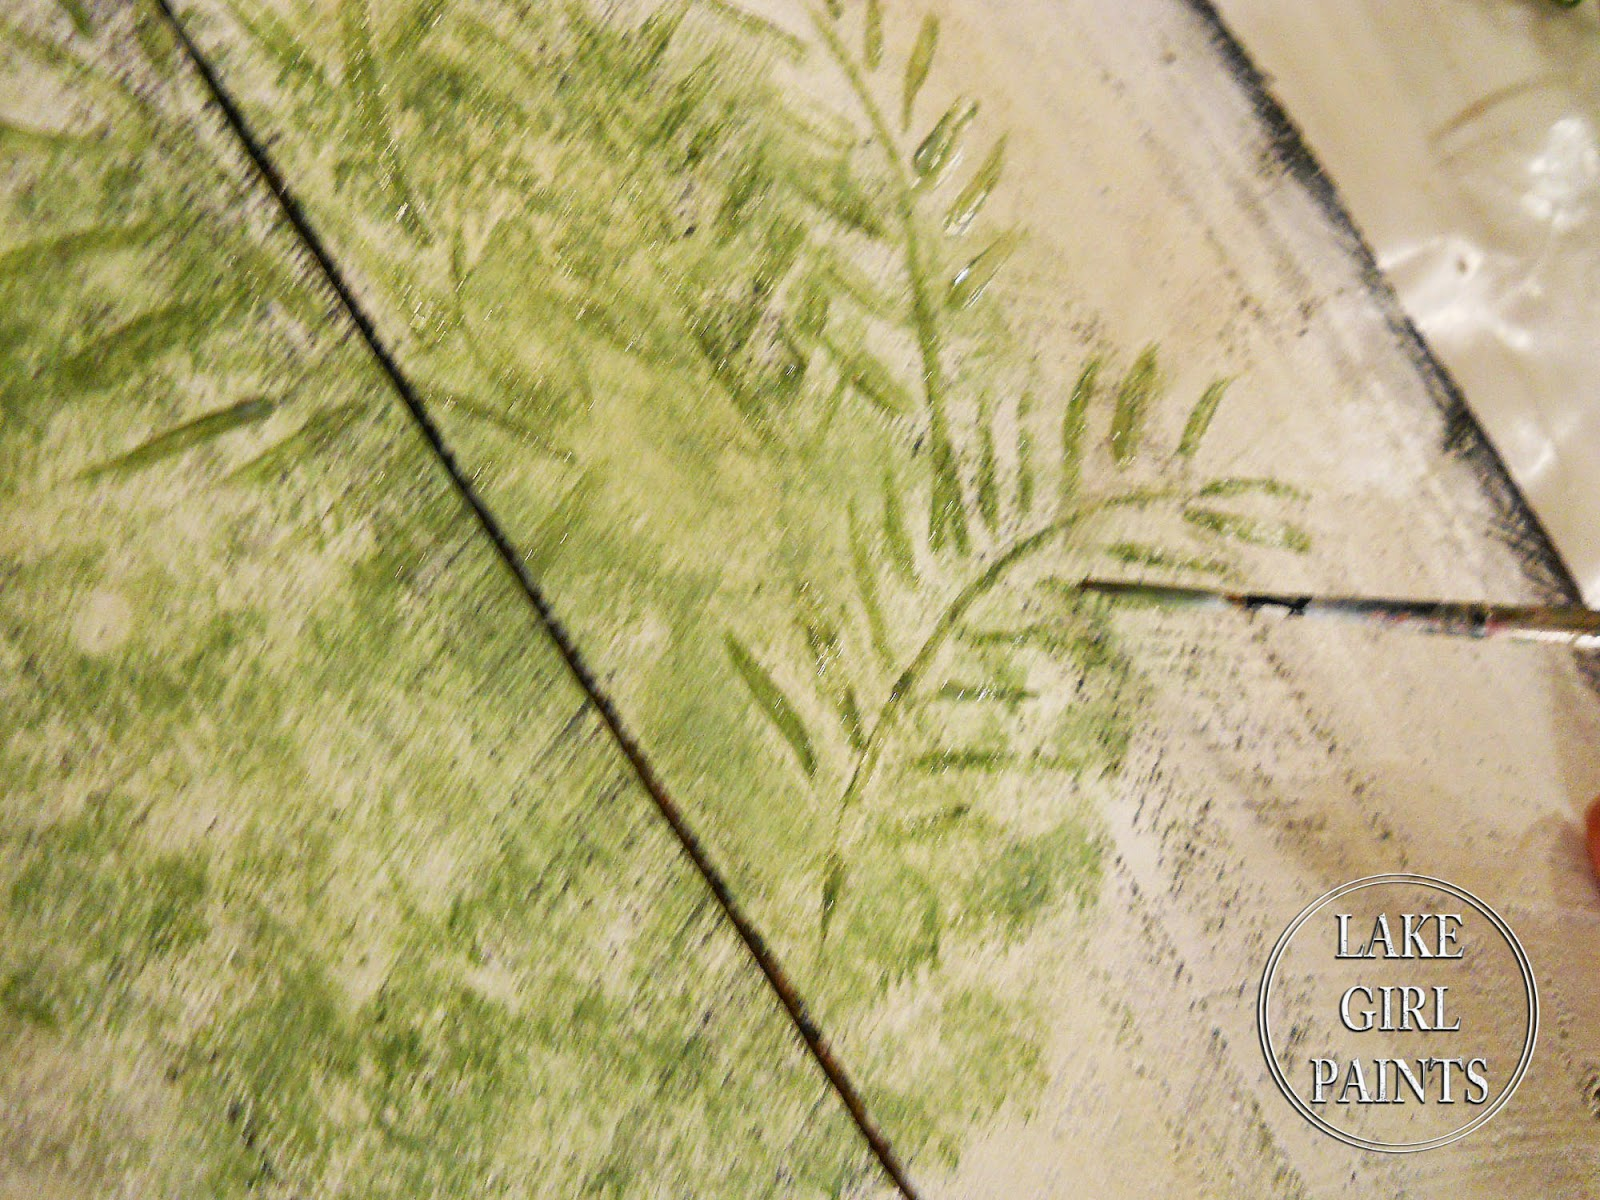 Lake Girl Paints: Topiary Garden Art on Rustic Boards